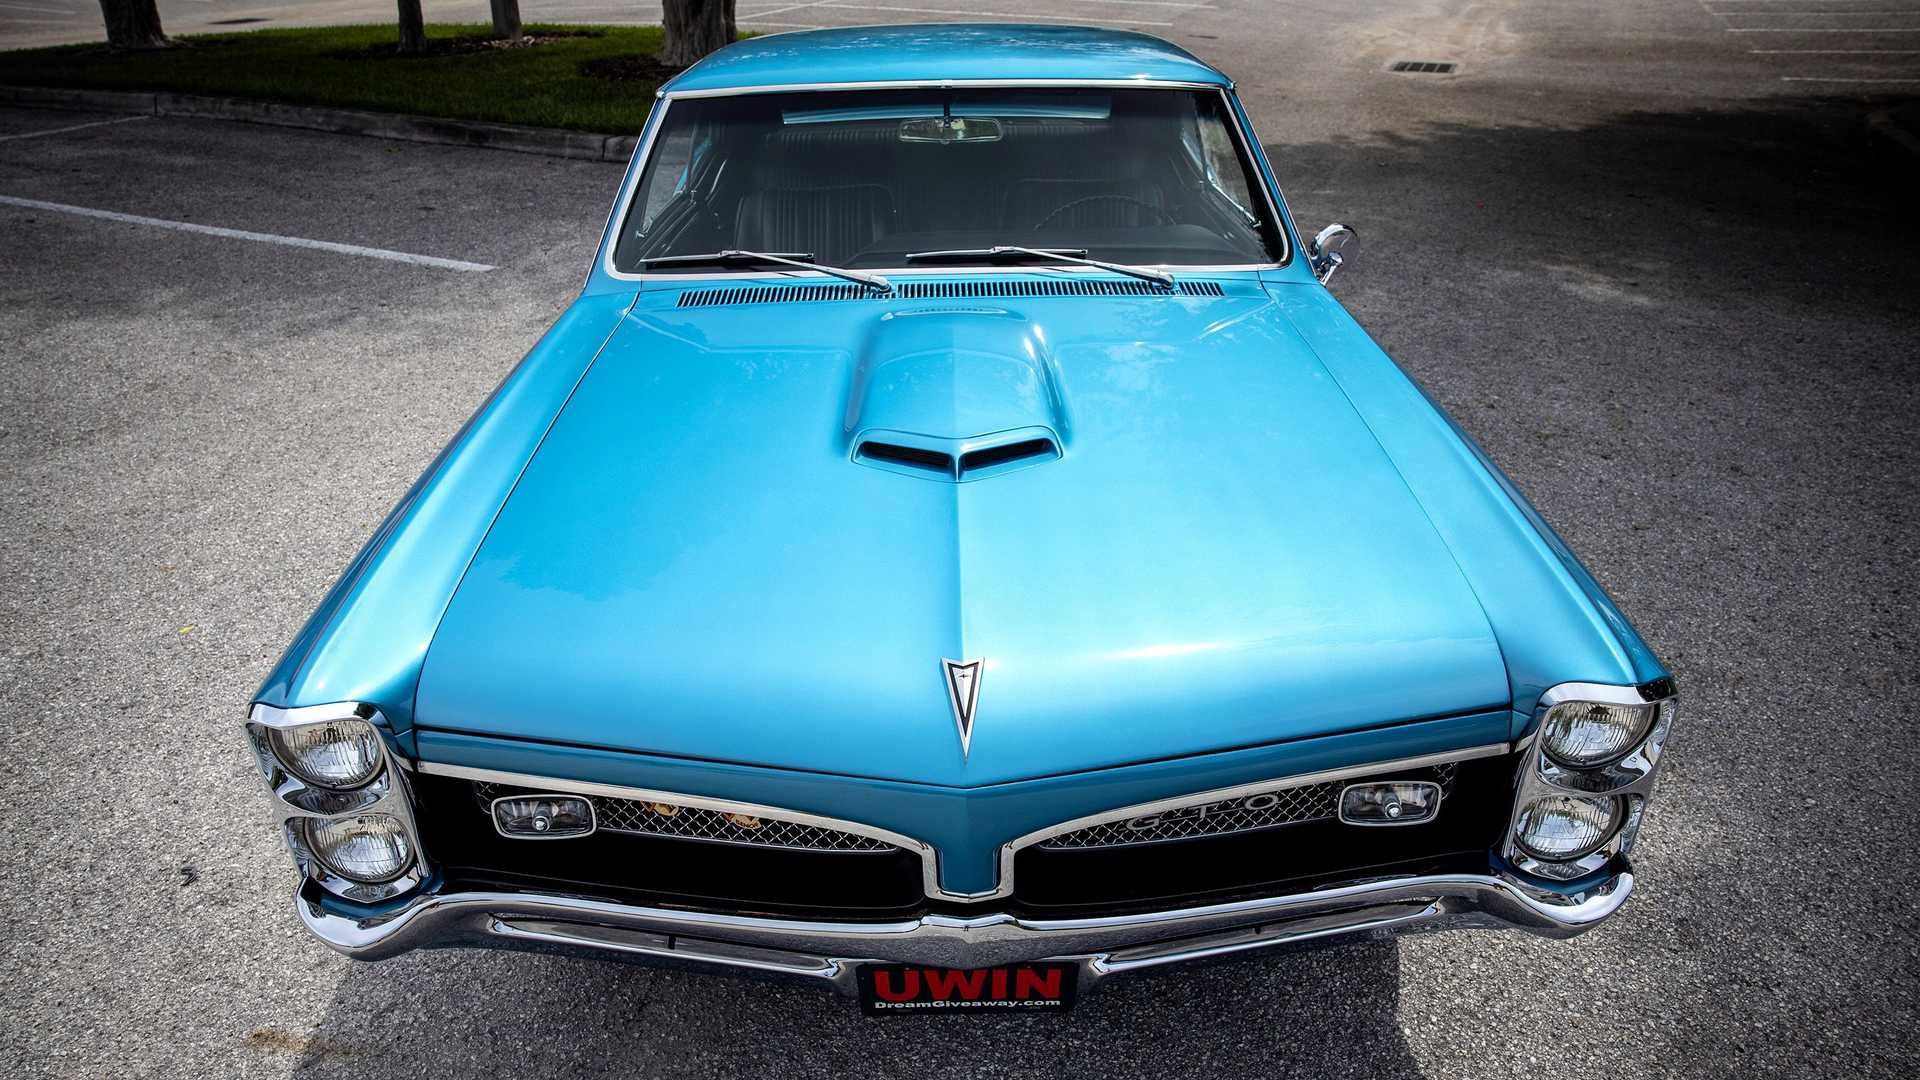 Enter Now To Win This Beautifully Restored 1967 Pontiac GTO Muscle Car